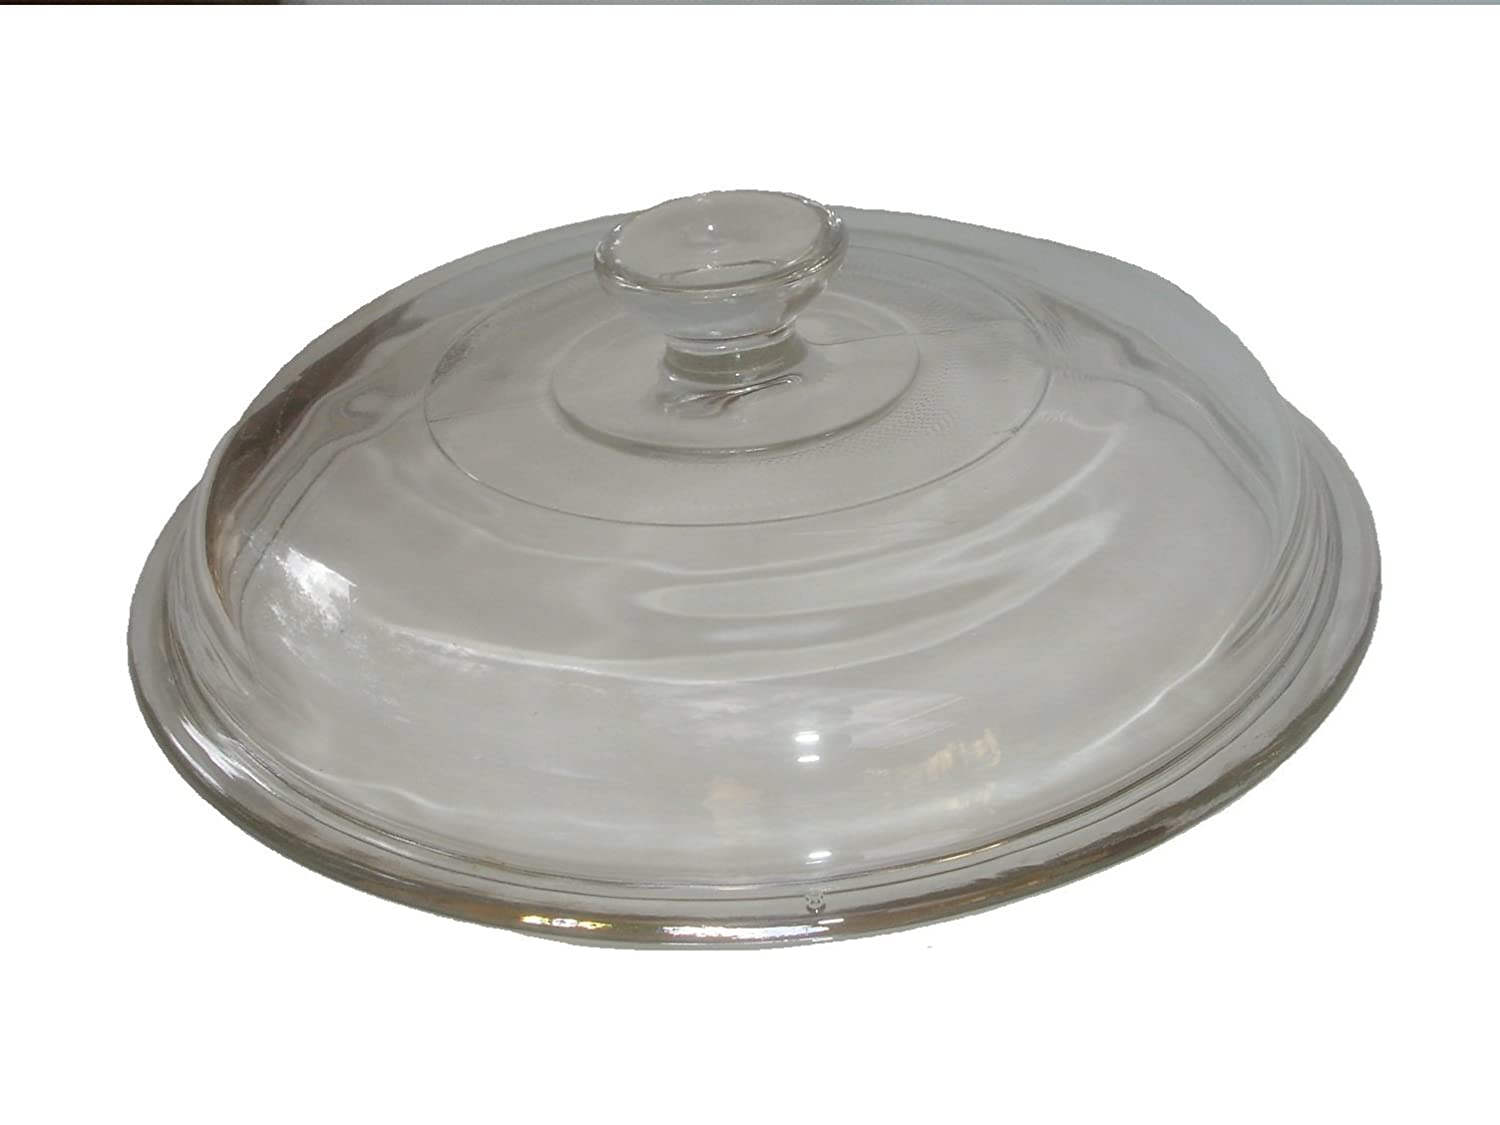 Rival Crock Pot Slow Cooker 3100 3100 2 3120 3130 3150 3150 2 Glass Lid 7 3 4 Outside Diameter